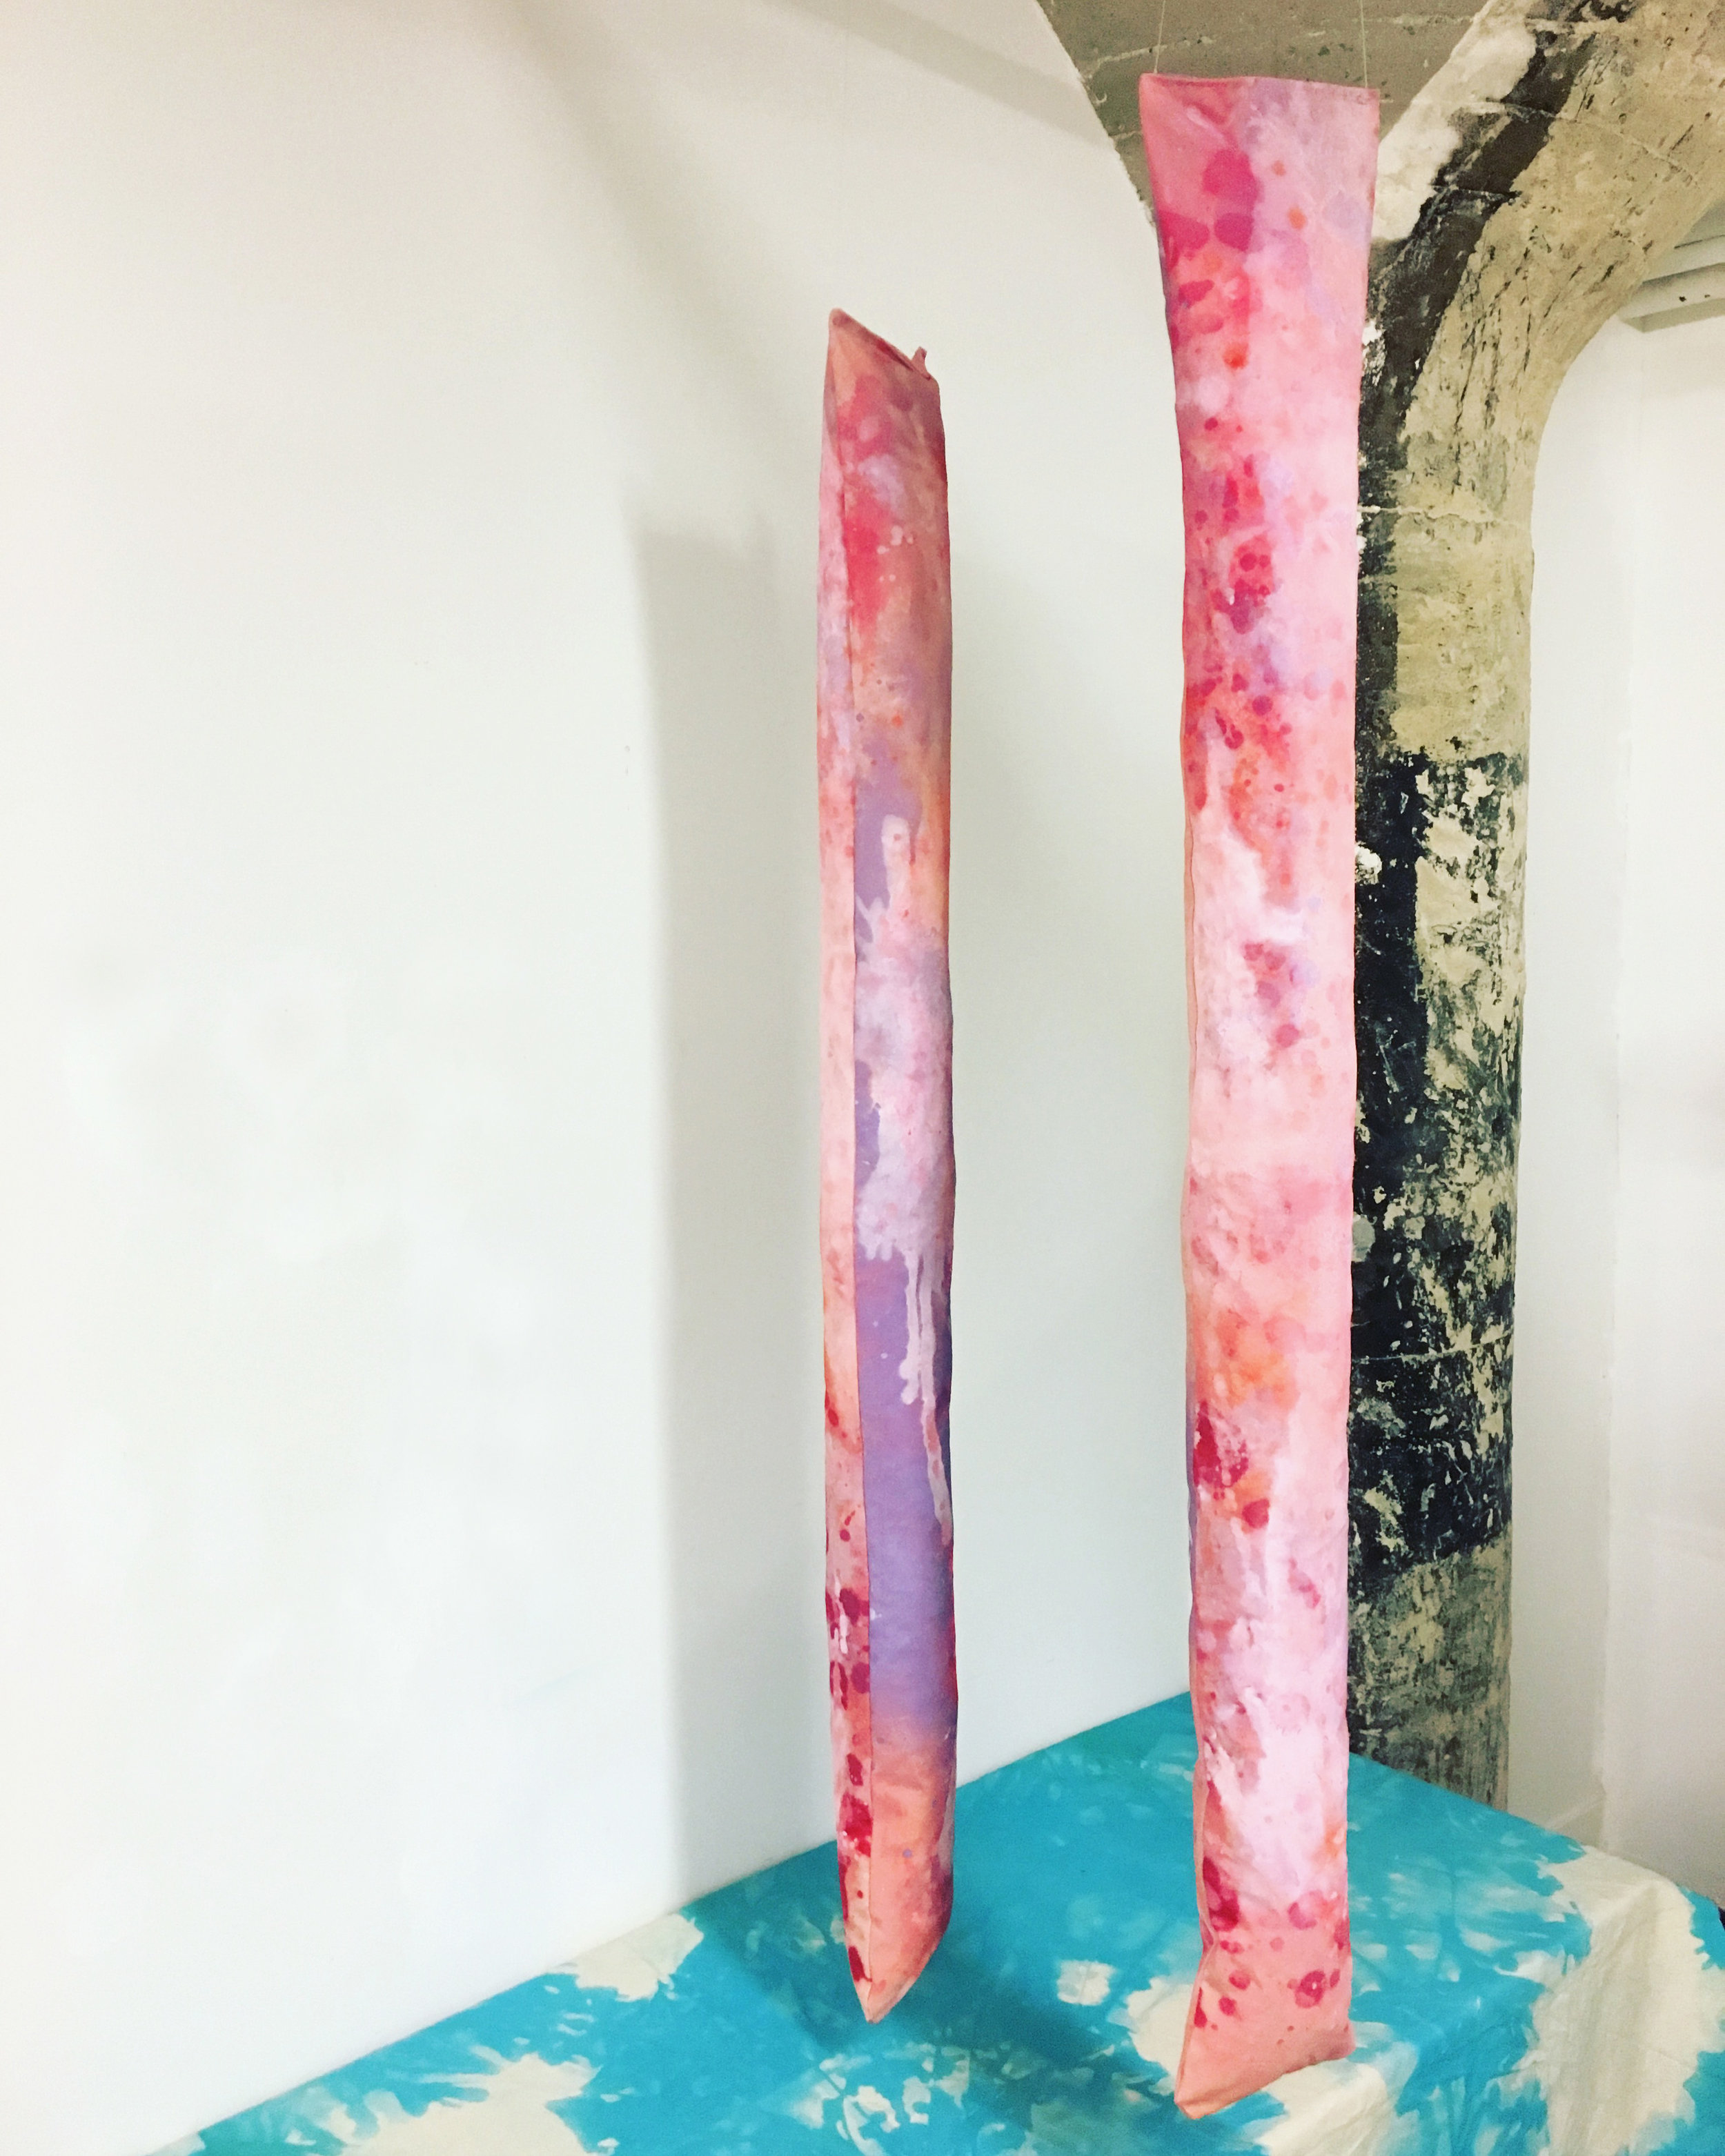 "Pillars,  acrylic, dye, spray paint, polyfil, and canvas, 6"" x 72"", 2019"